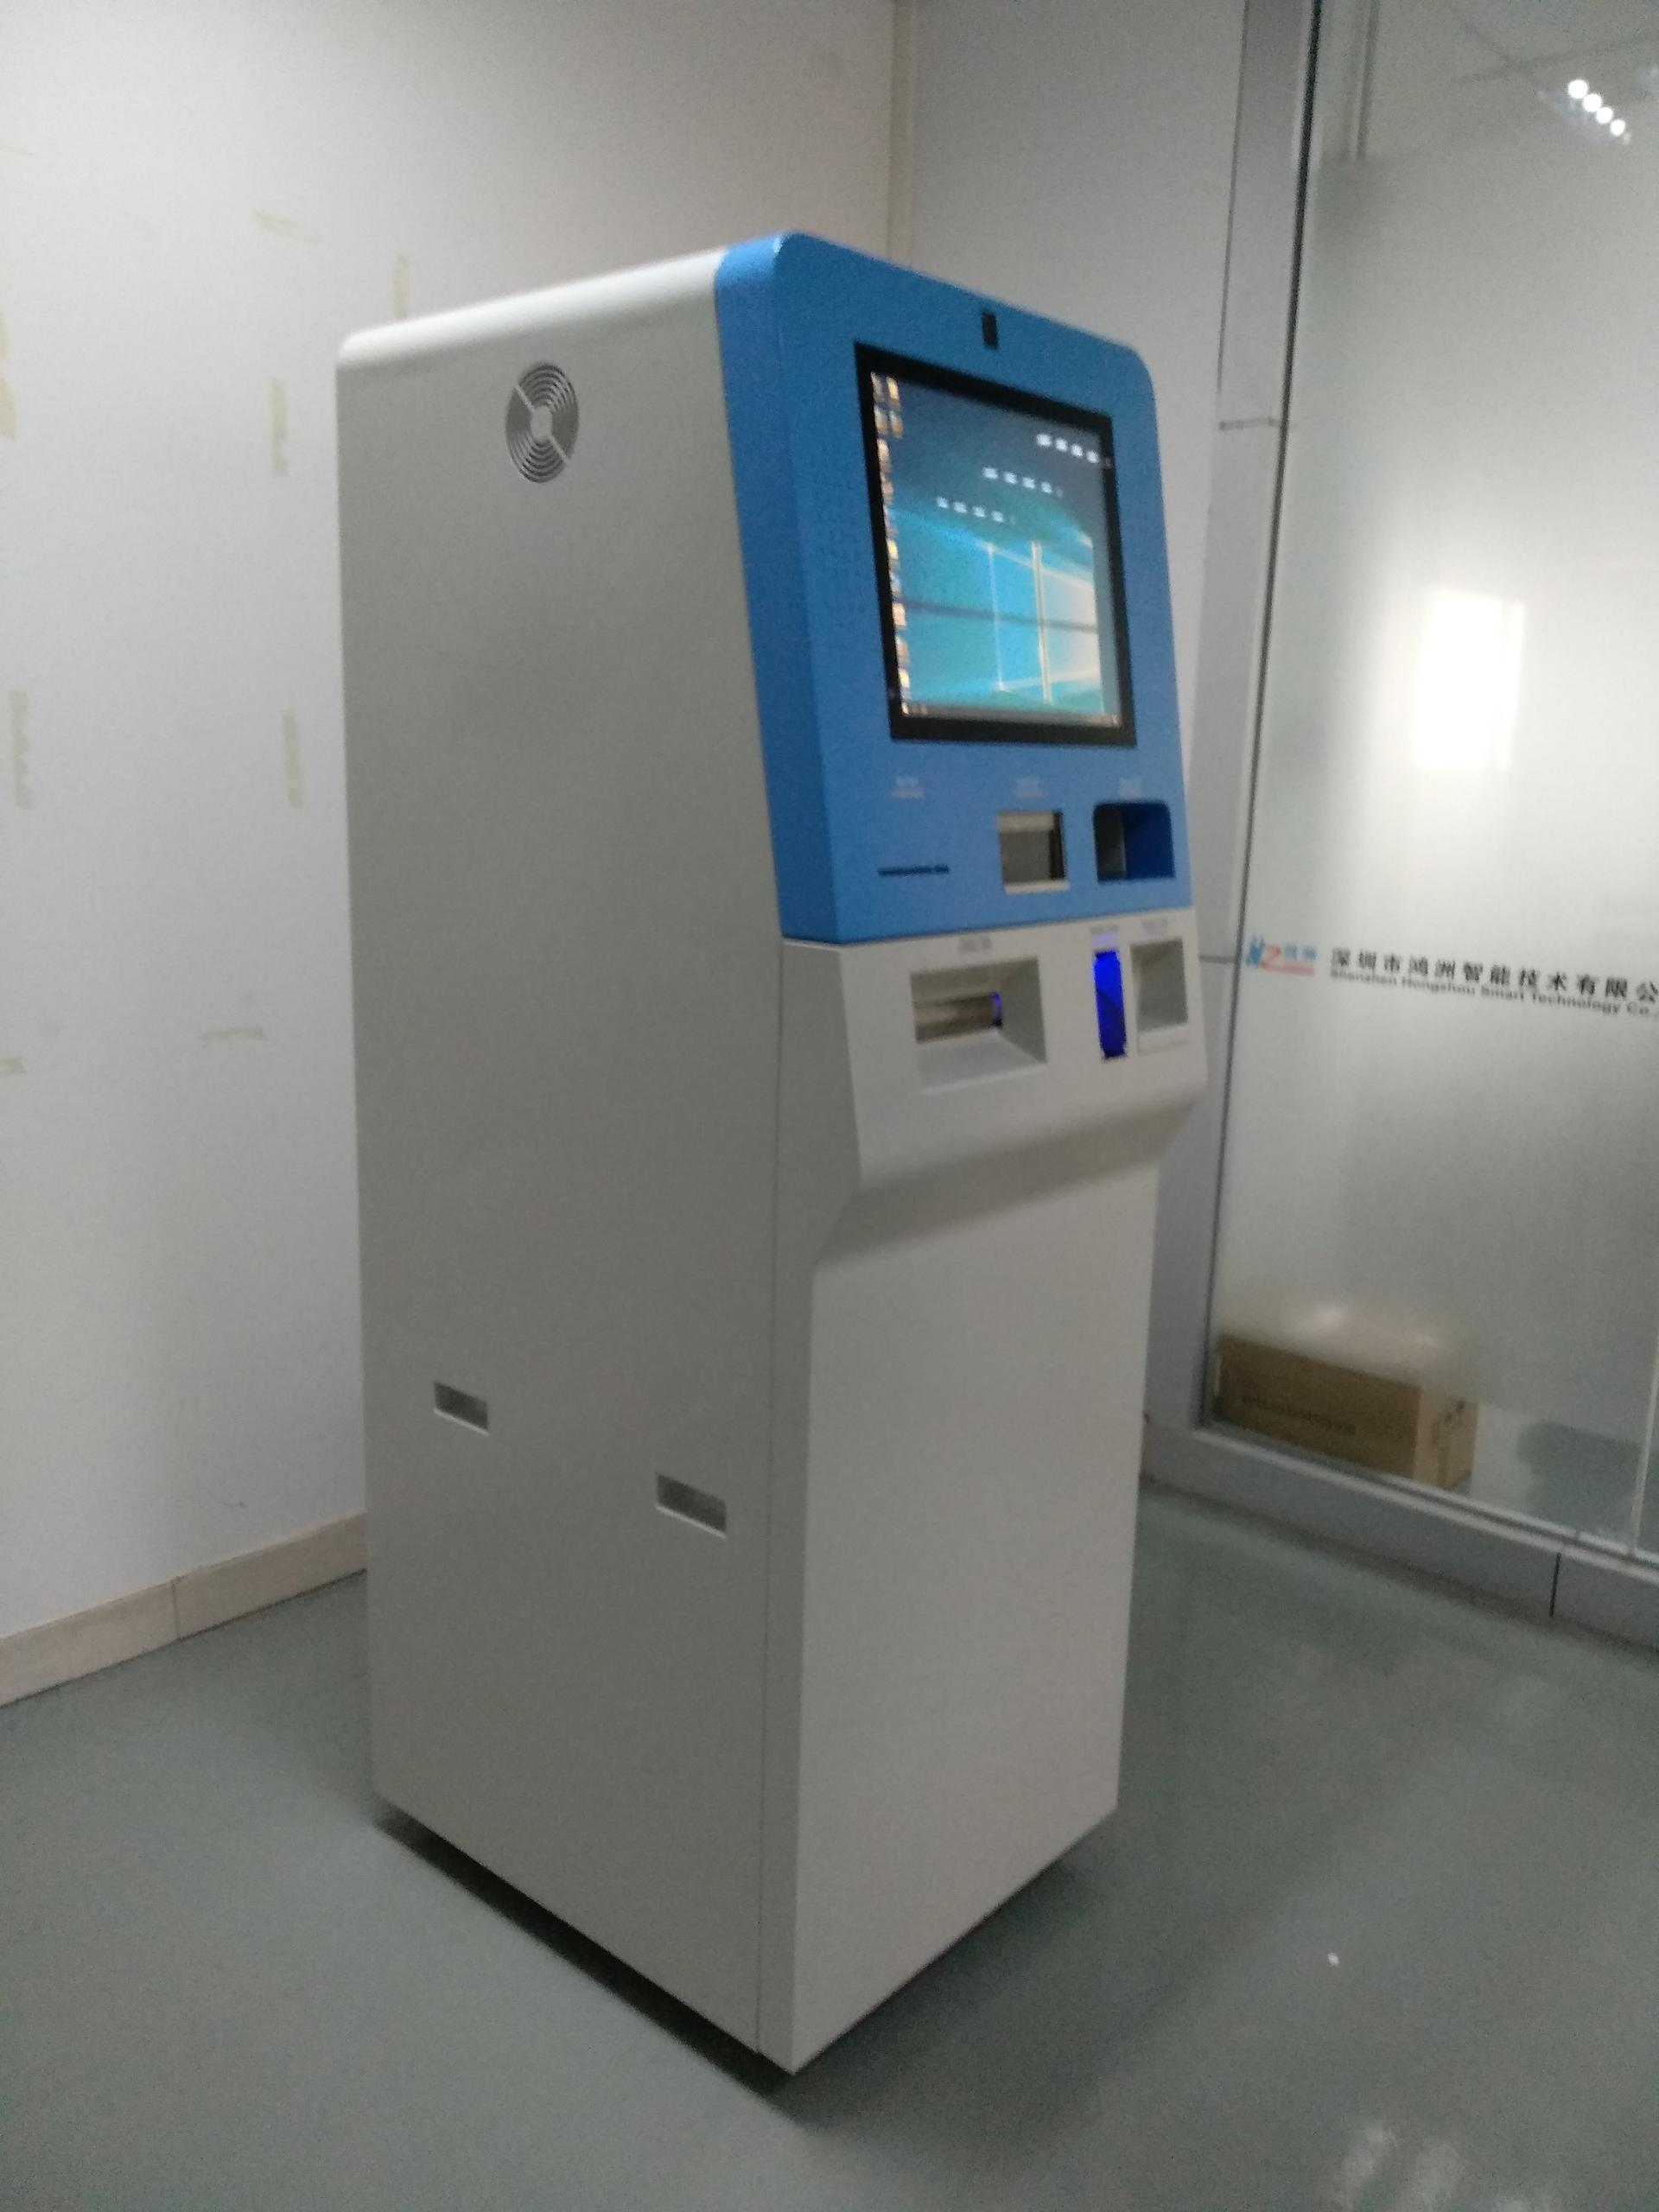 elegant foreign currency exchange kiosk with coin accepting cash aceepting